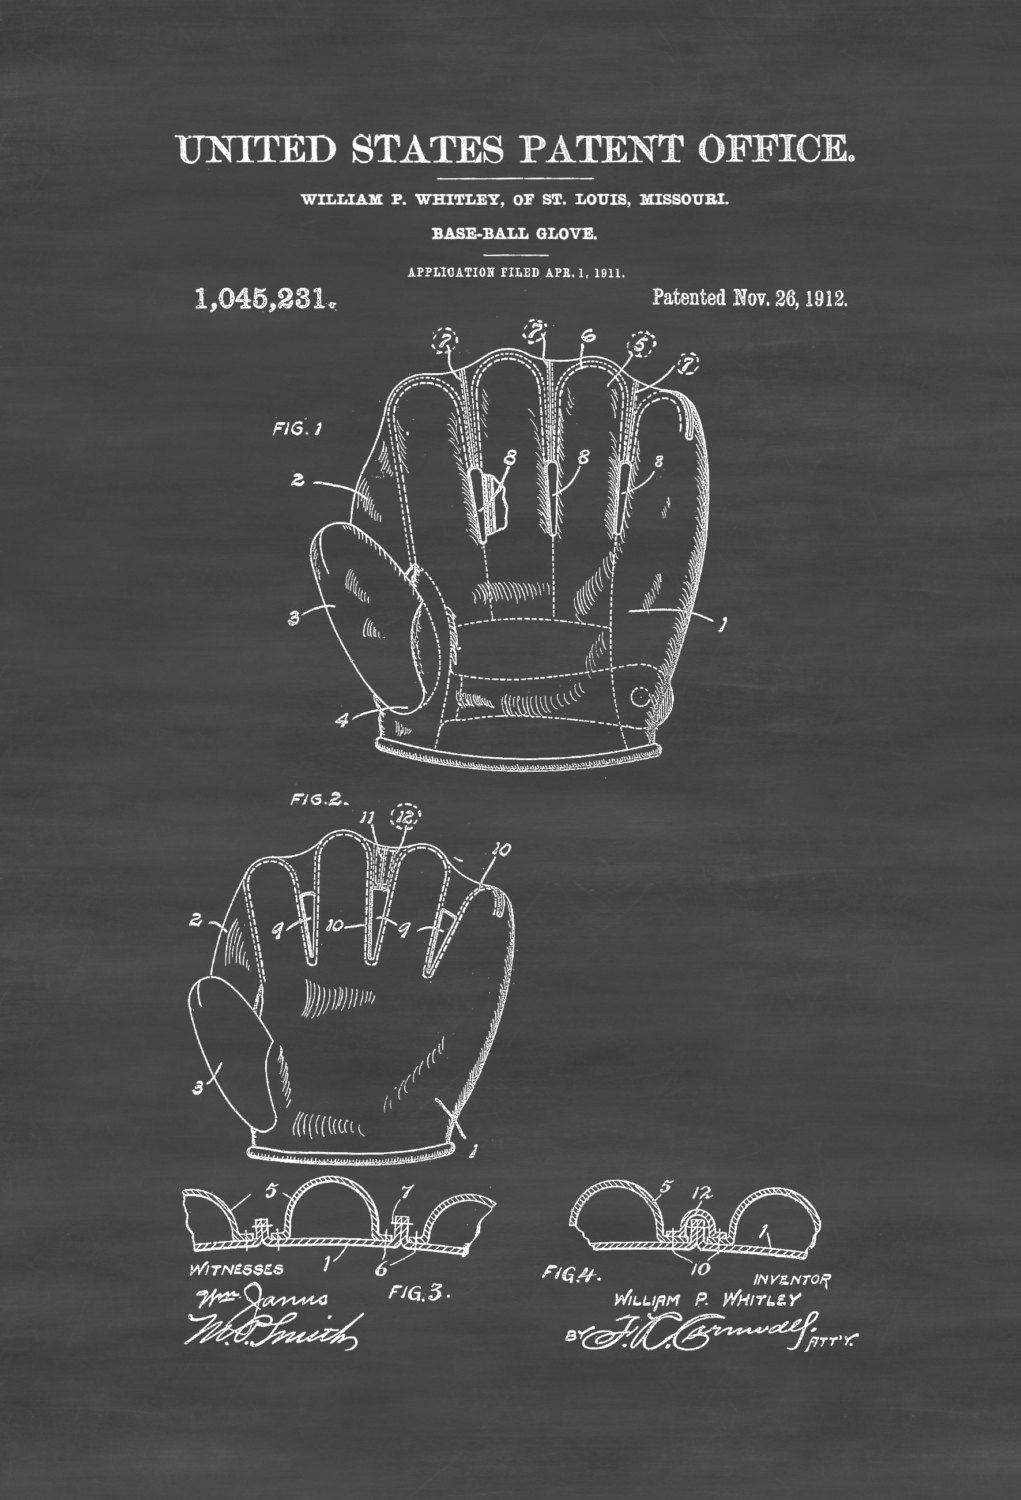 Baseball glove patent patent print wall decor baseball art baseball glove patent patent print wall decor baseball art glove patent baseball fan gift baseball glove blueprint malvernweather Choice Image